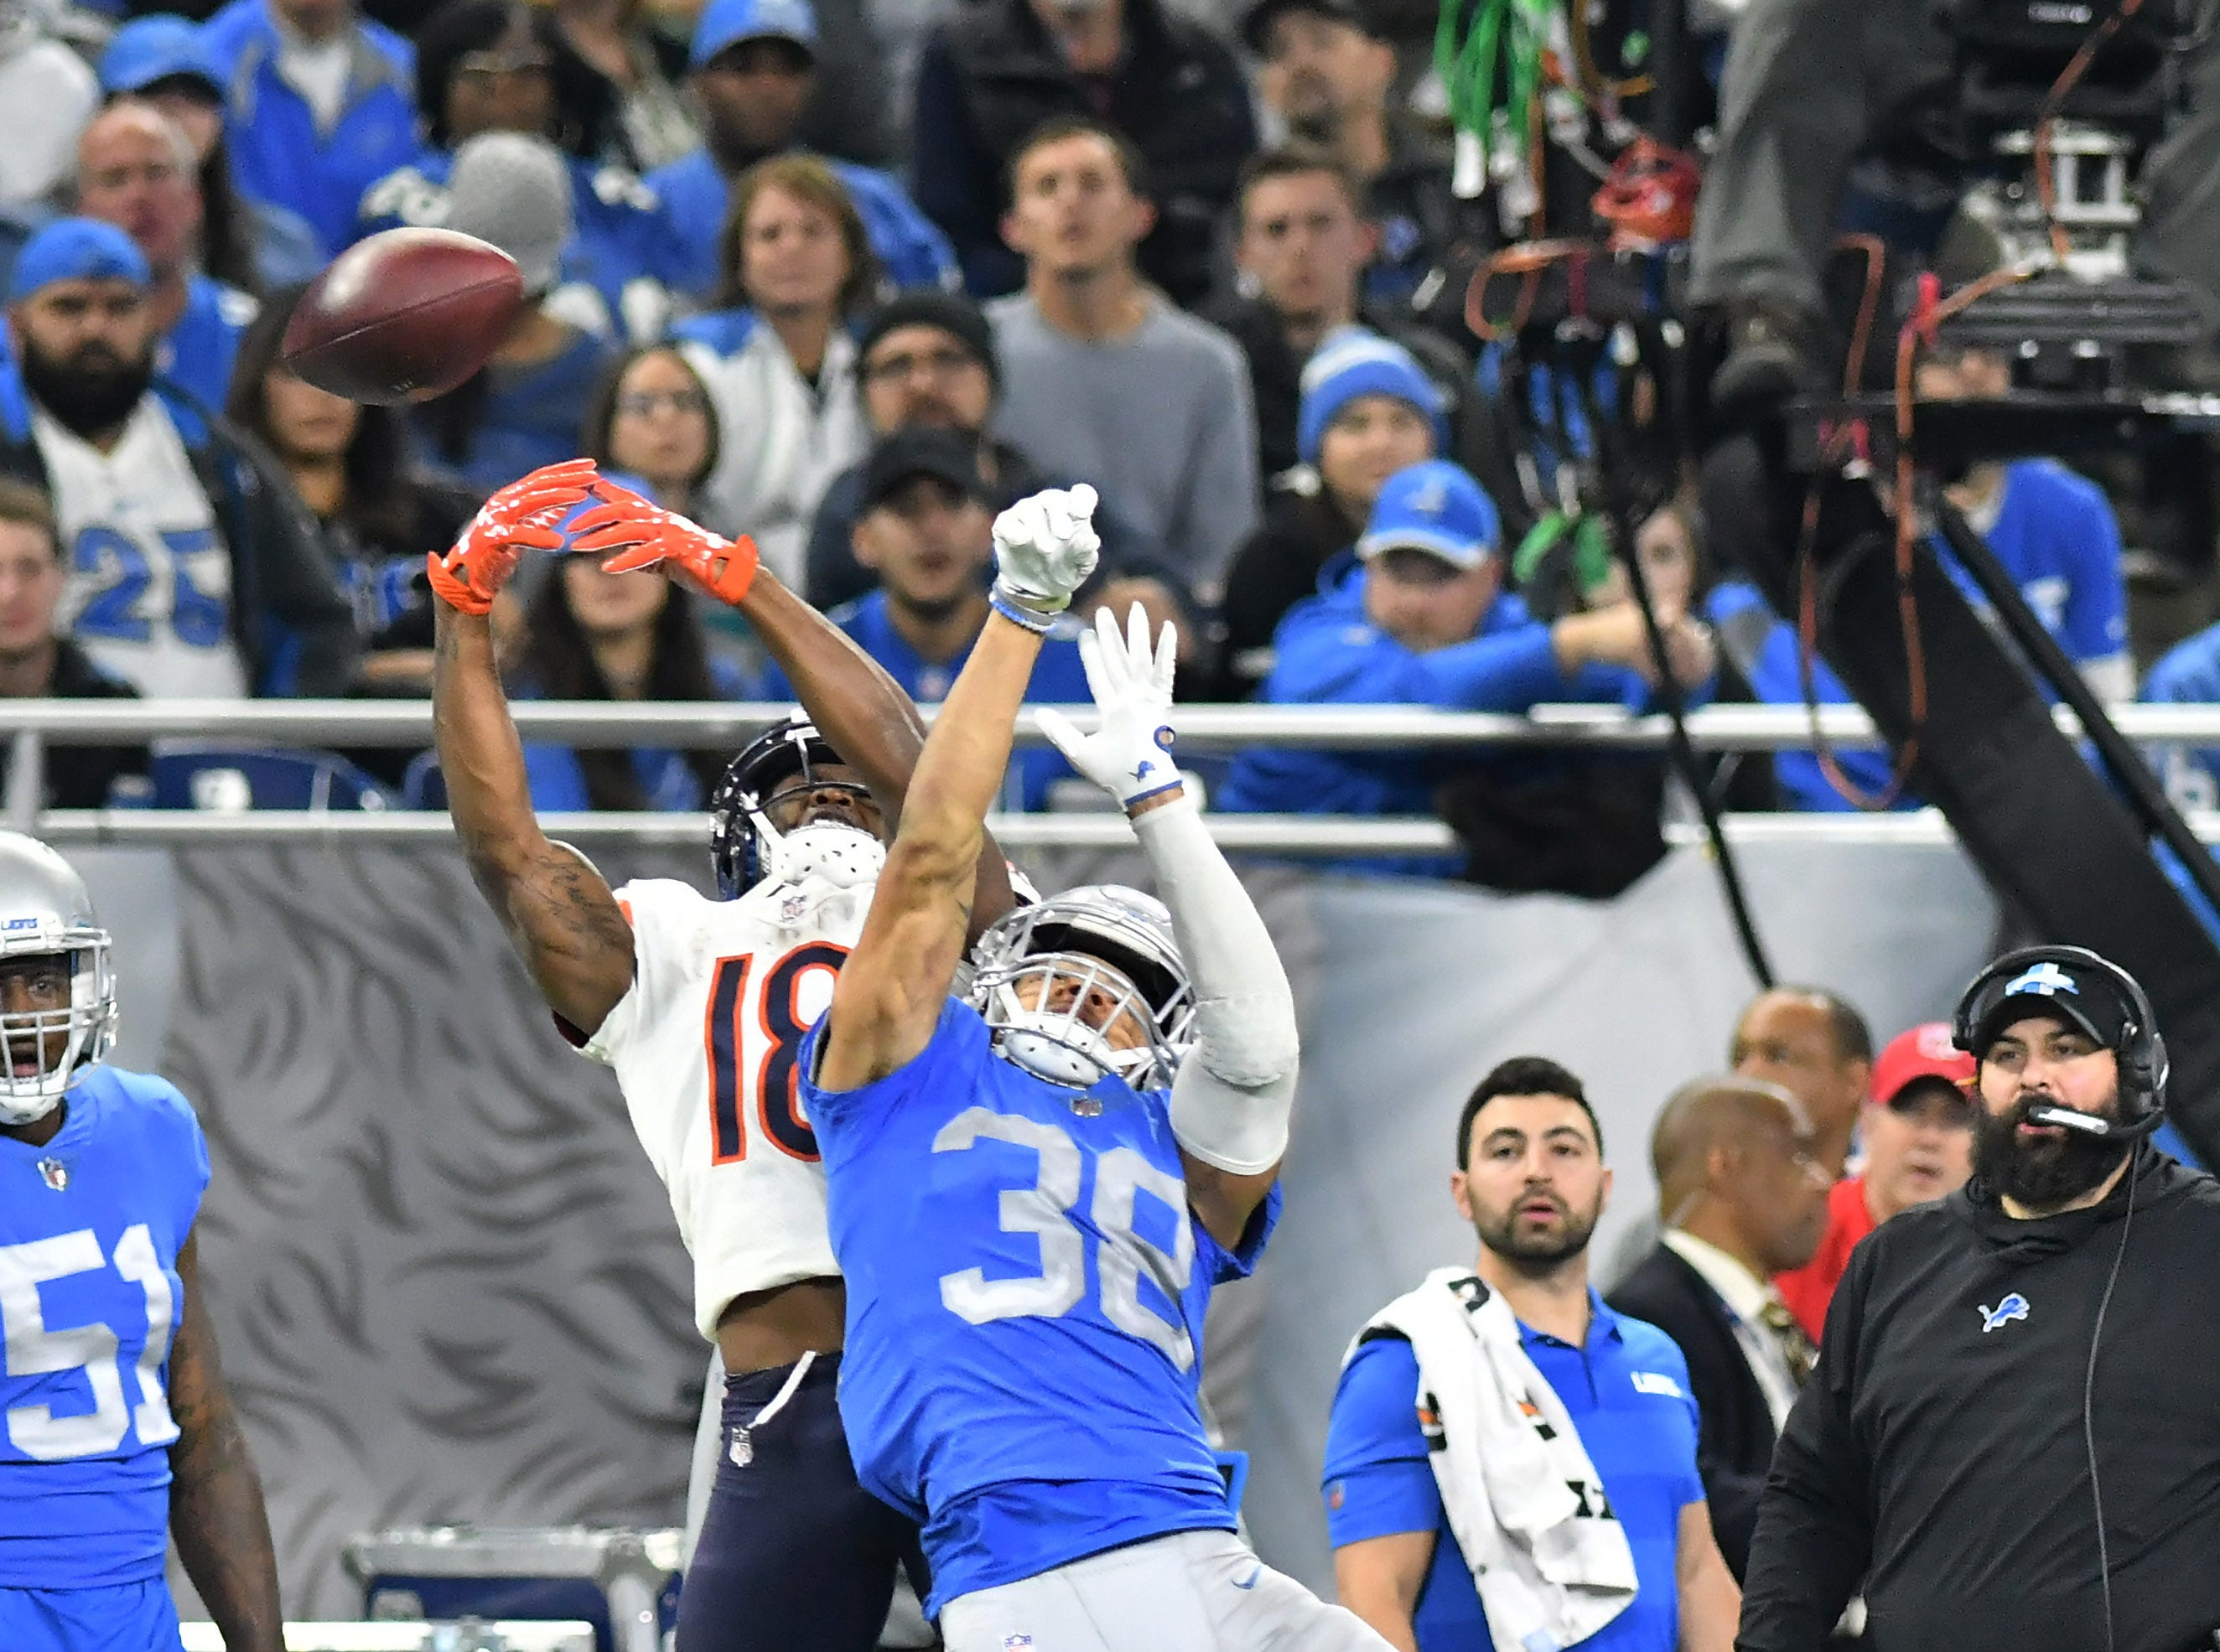 Lions' Mike Ford (38) breaks up a pass intended for Bears' Taylor Gabriel In the fourth quarter.  Detroit Lions vs Chicago Bears on Thanksgiving Day at Ford Field in Detroit on Nov. 22, 2018.  Bears win, 23-16.(Robin Buckson / Detroit News)